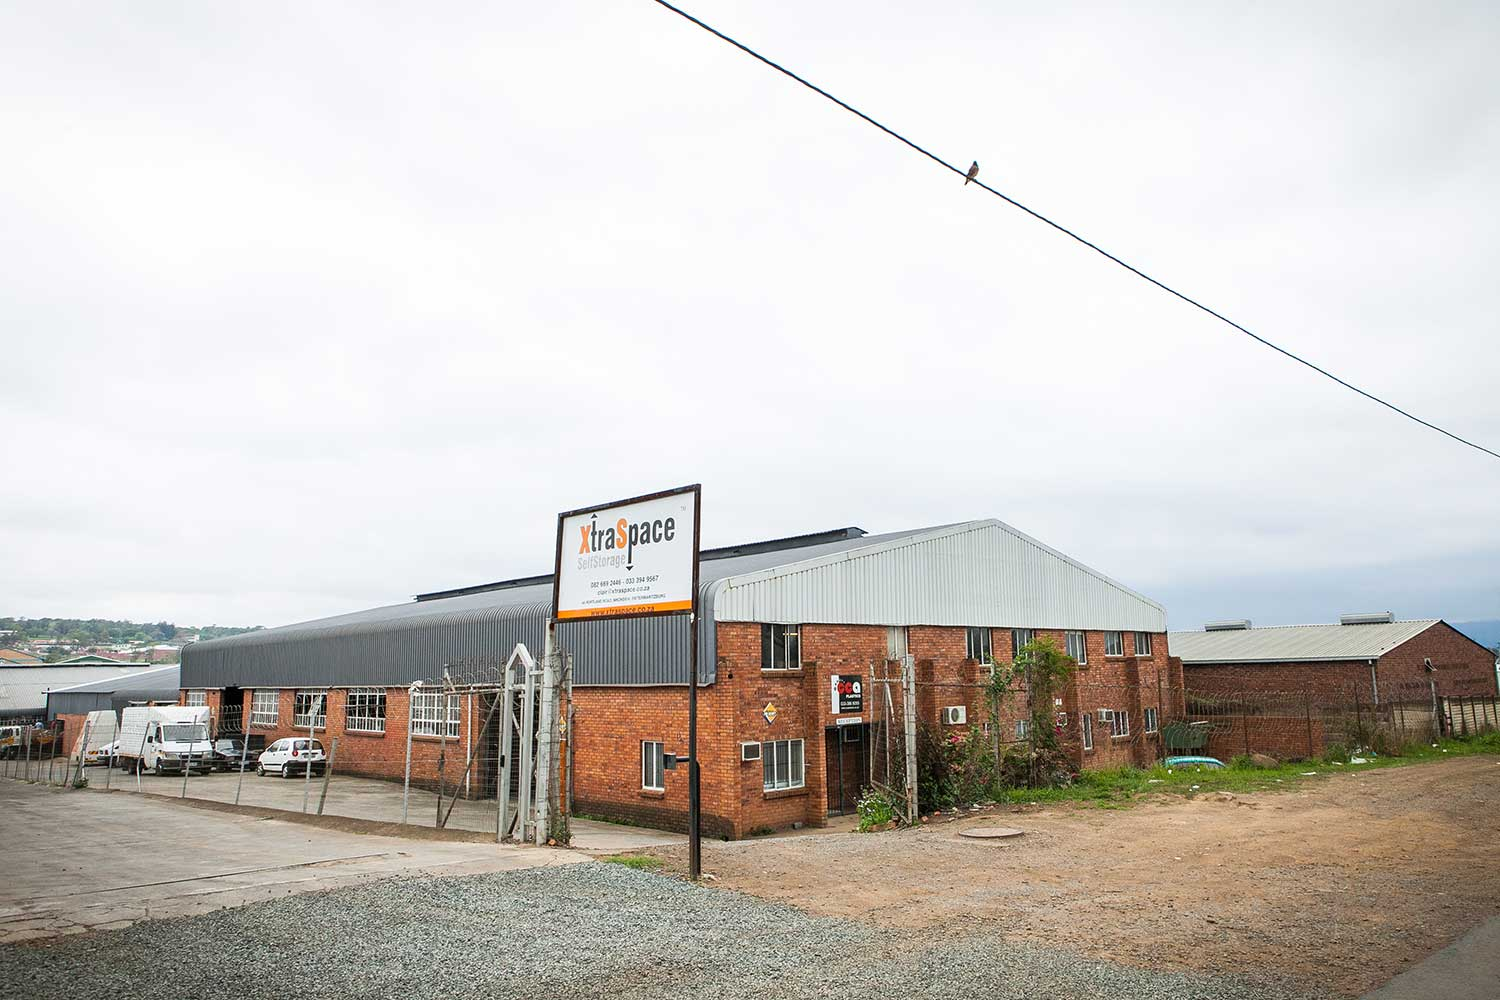 Street view of the XtraSpace Mkondeni self storage facility in Pietermaritzburg